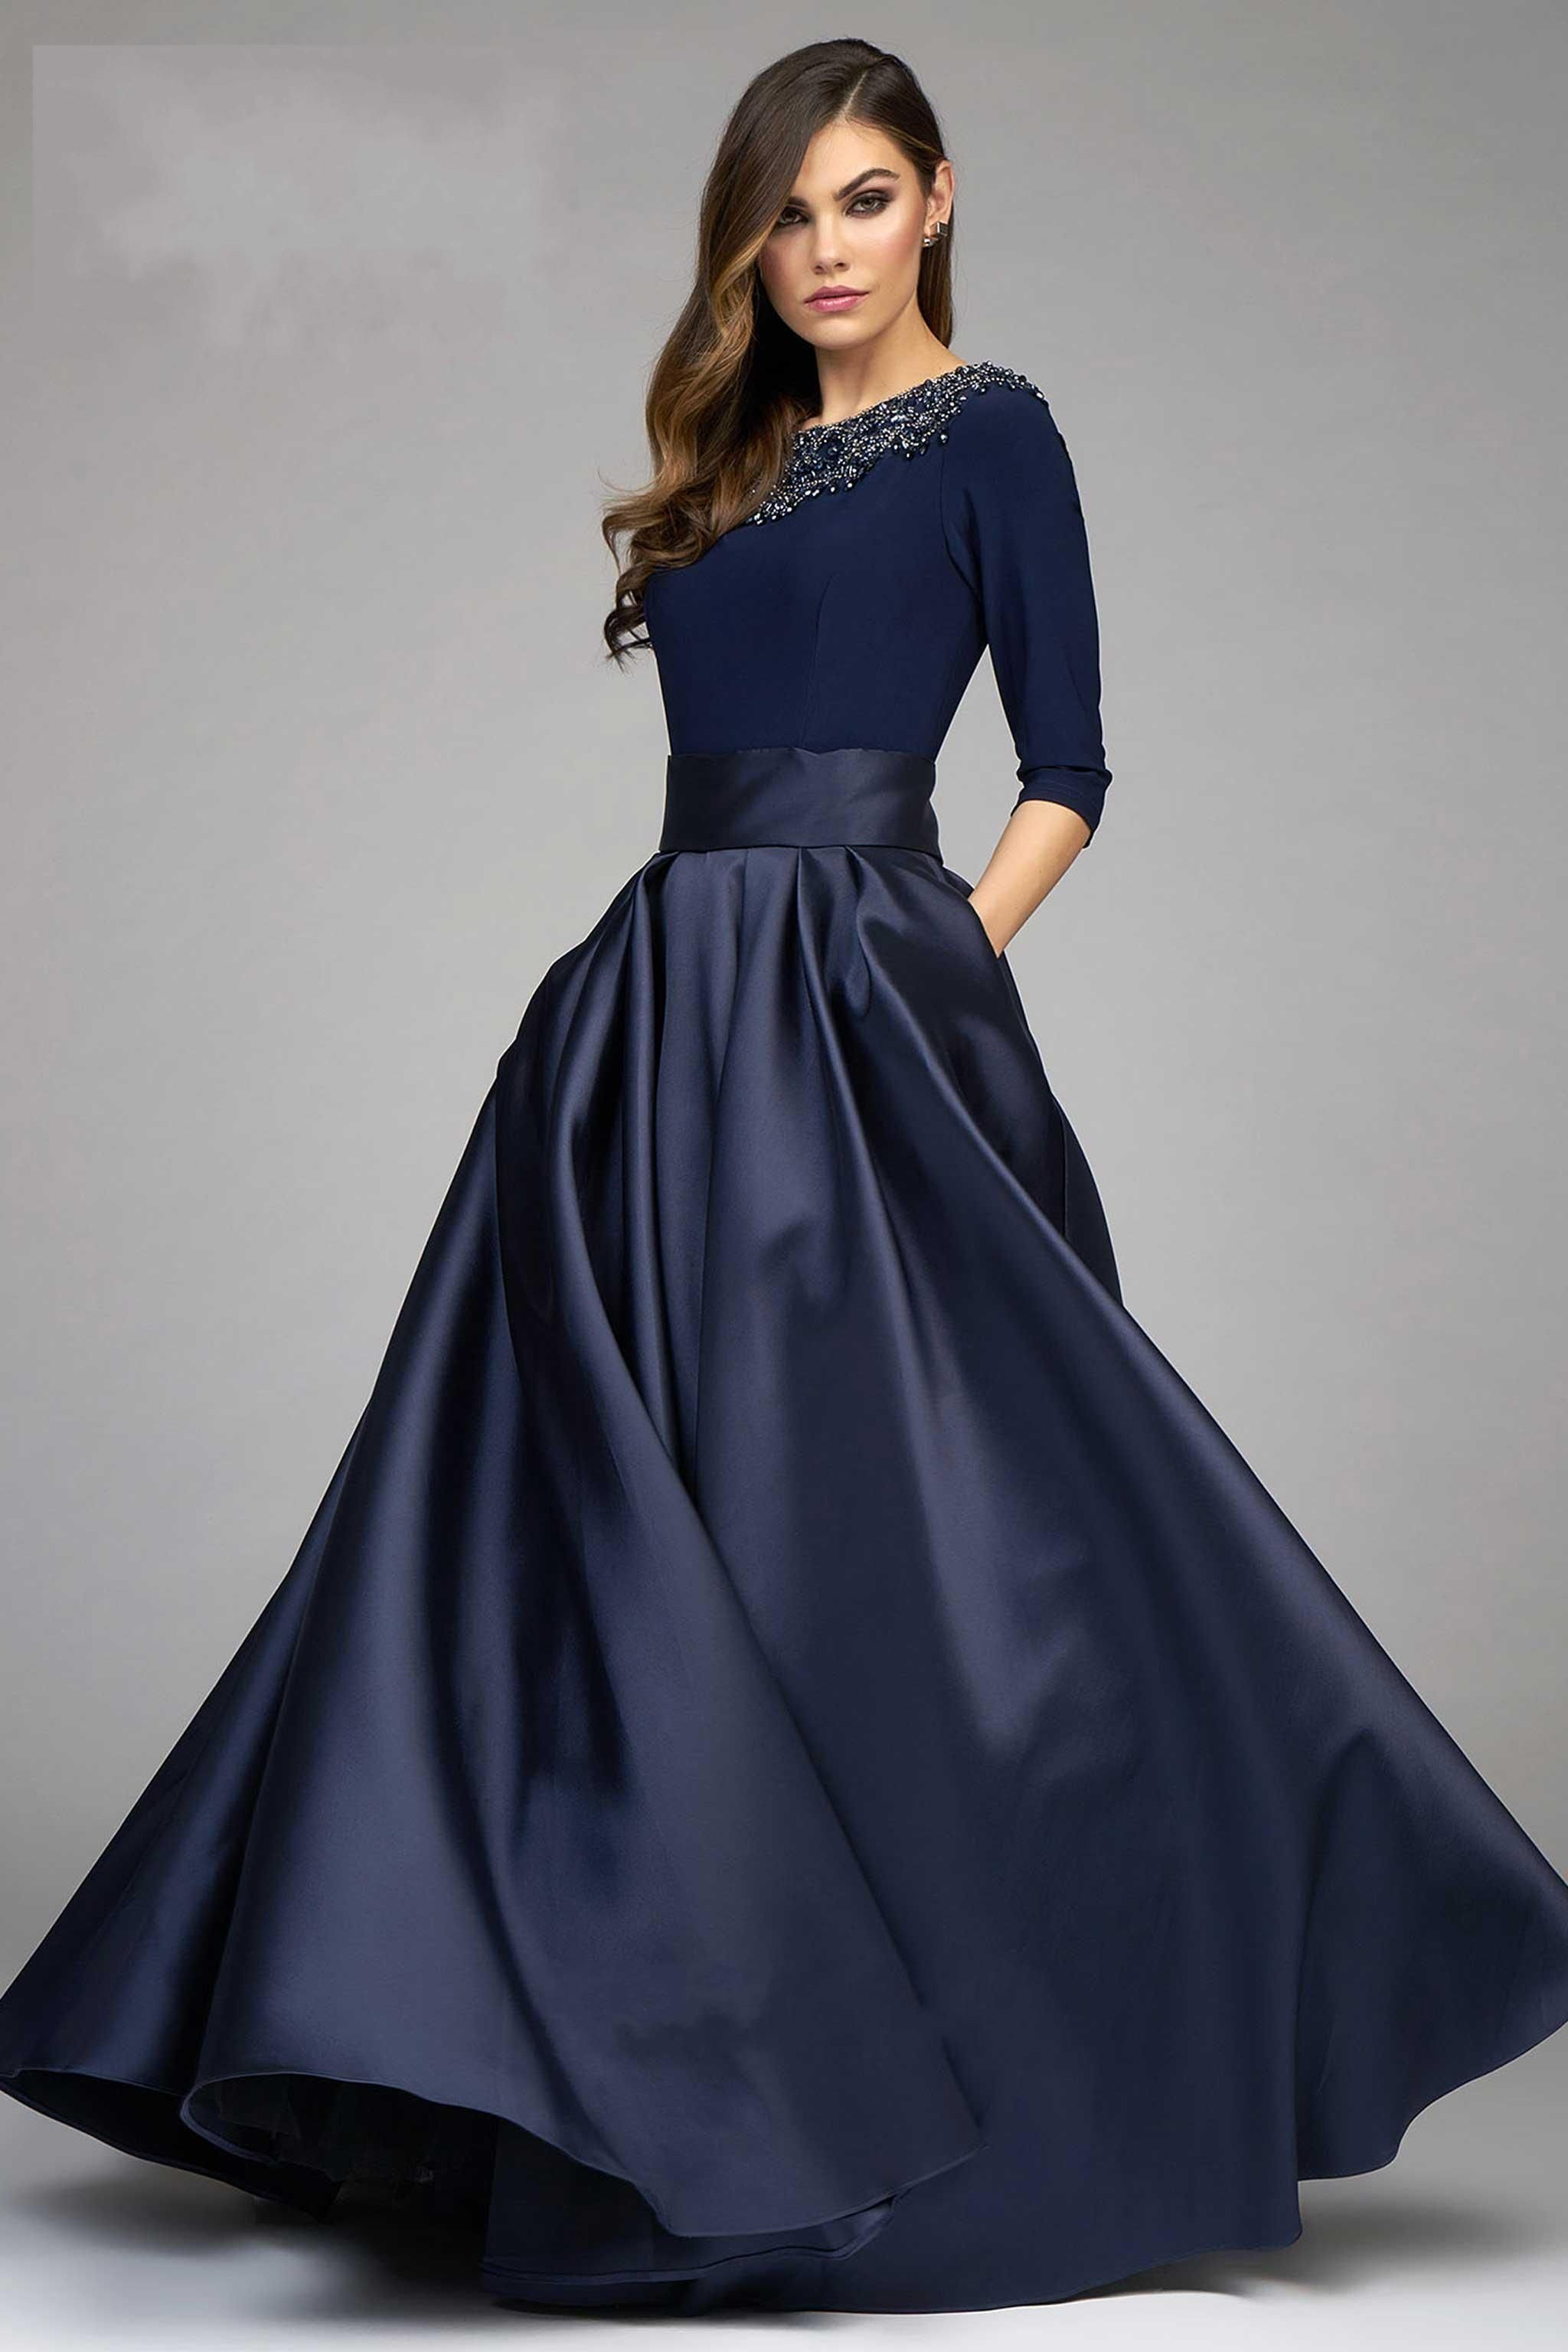 2017 Fashion Ball Gown Dresses Evening Wear Navy Blue Long